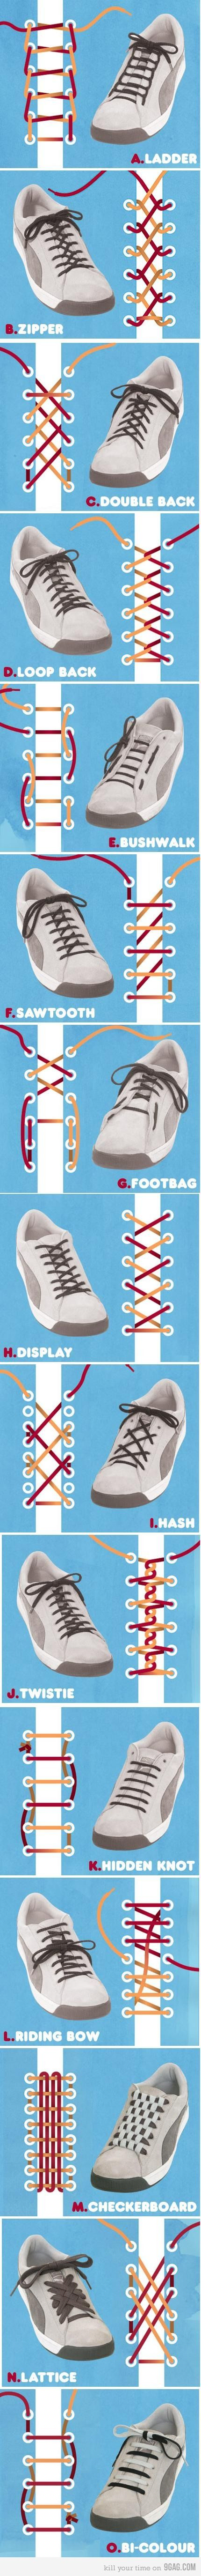 who knew there were so many ways to tie a shoe